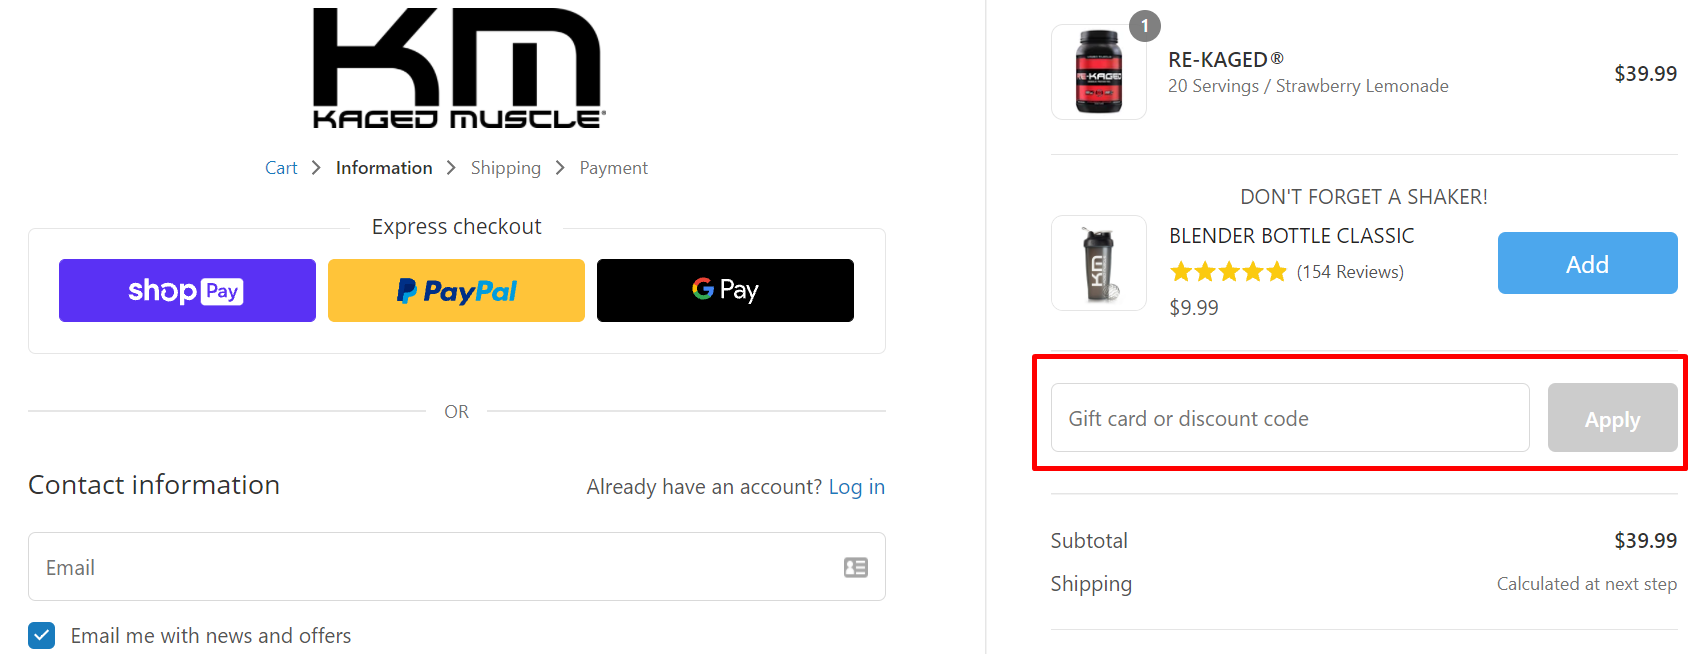 How do I use my Kaged Muscle discount code?